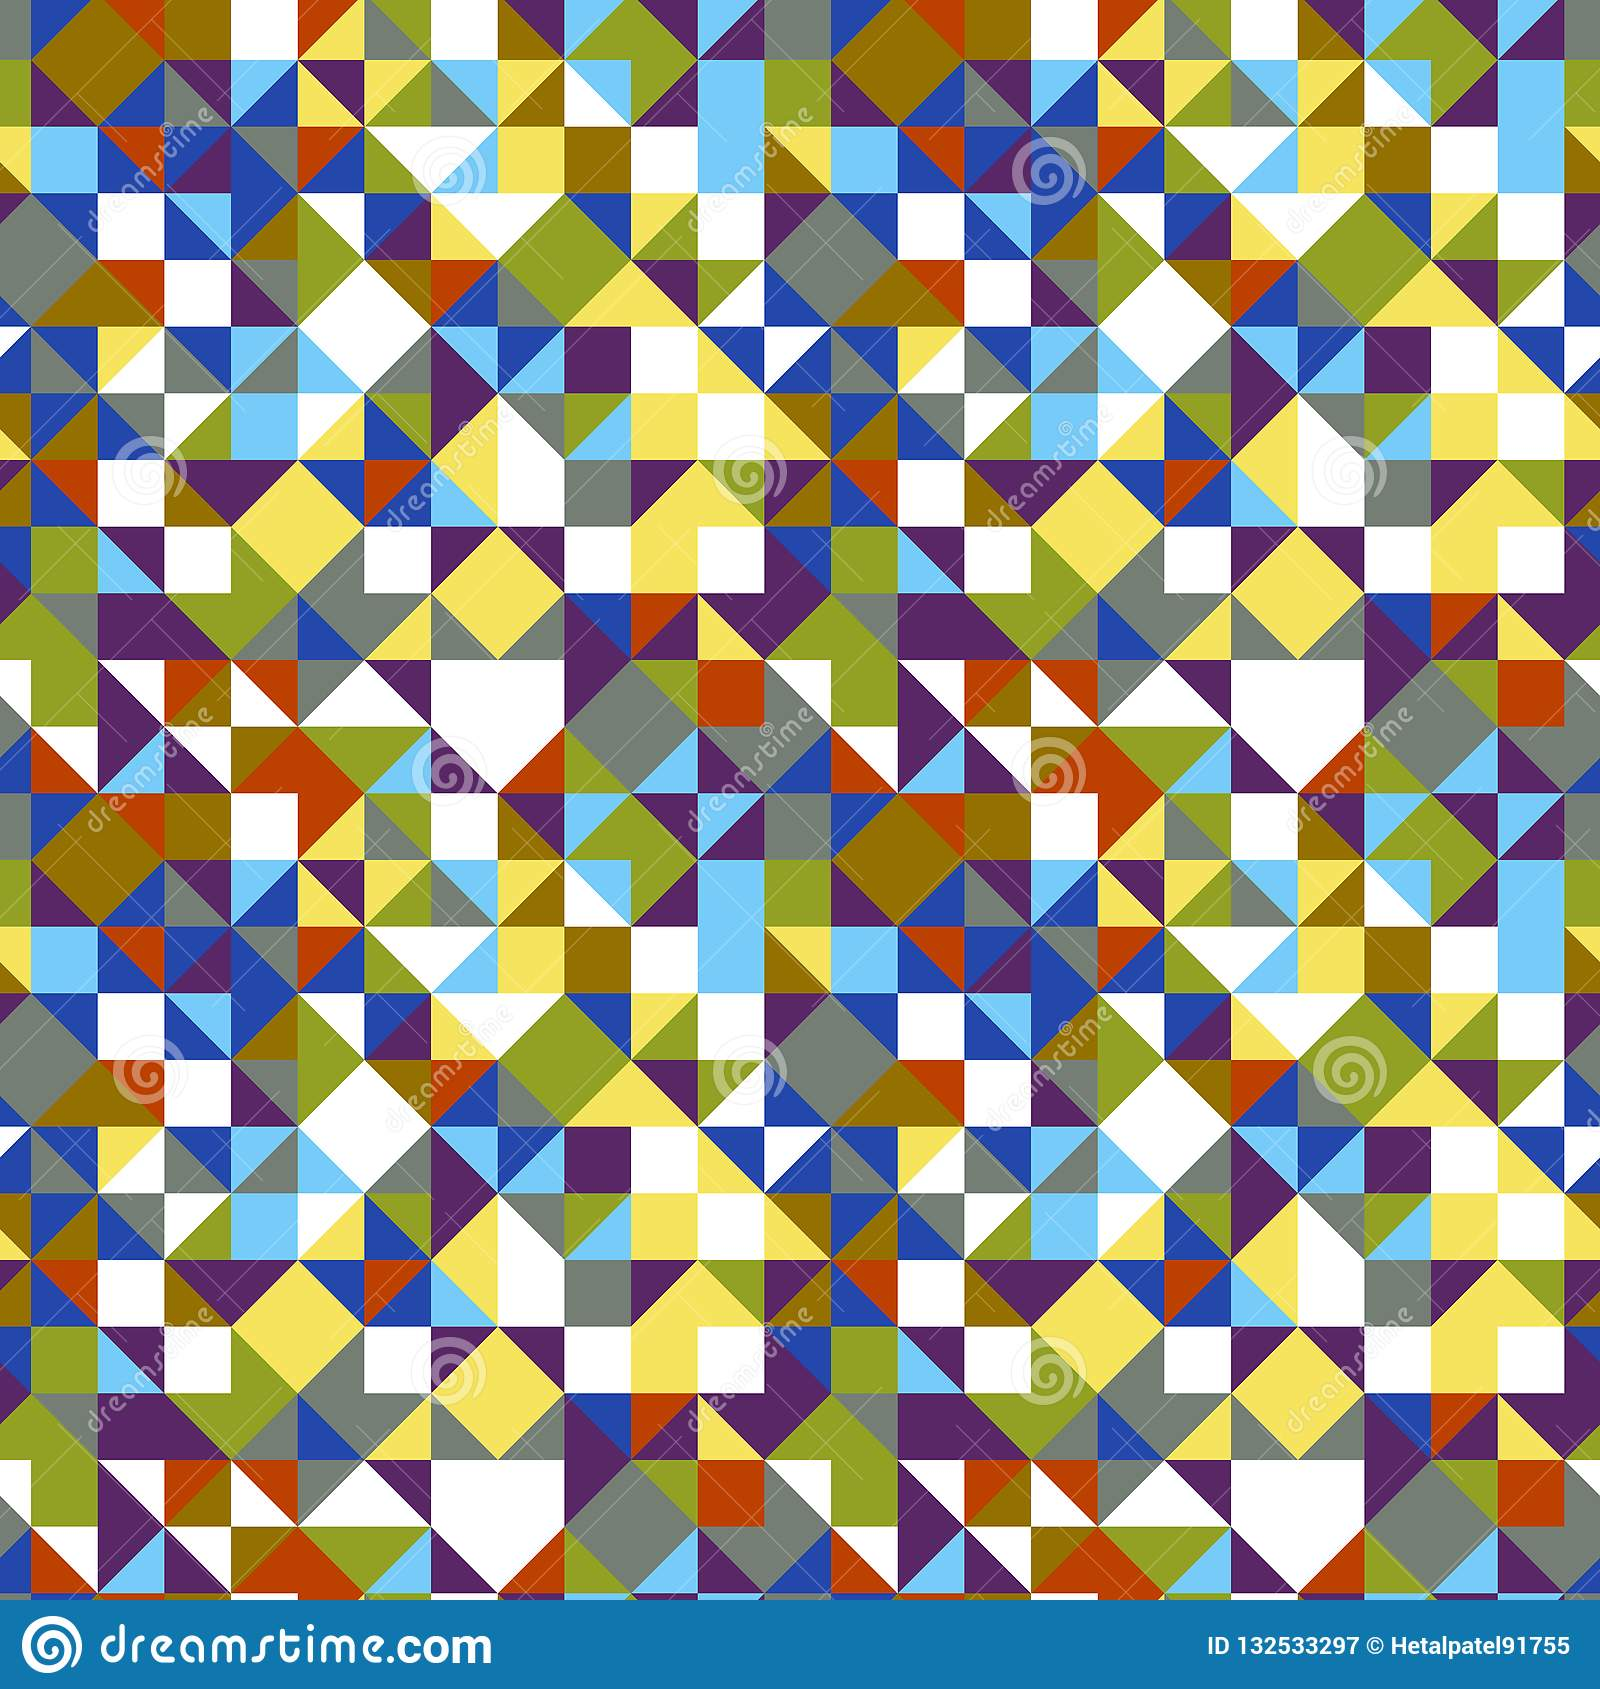 Geometrical triangle tiled pattern background